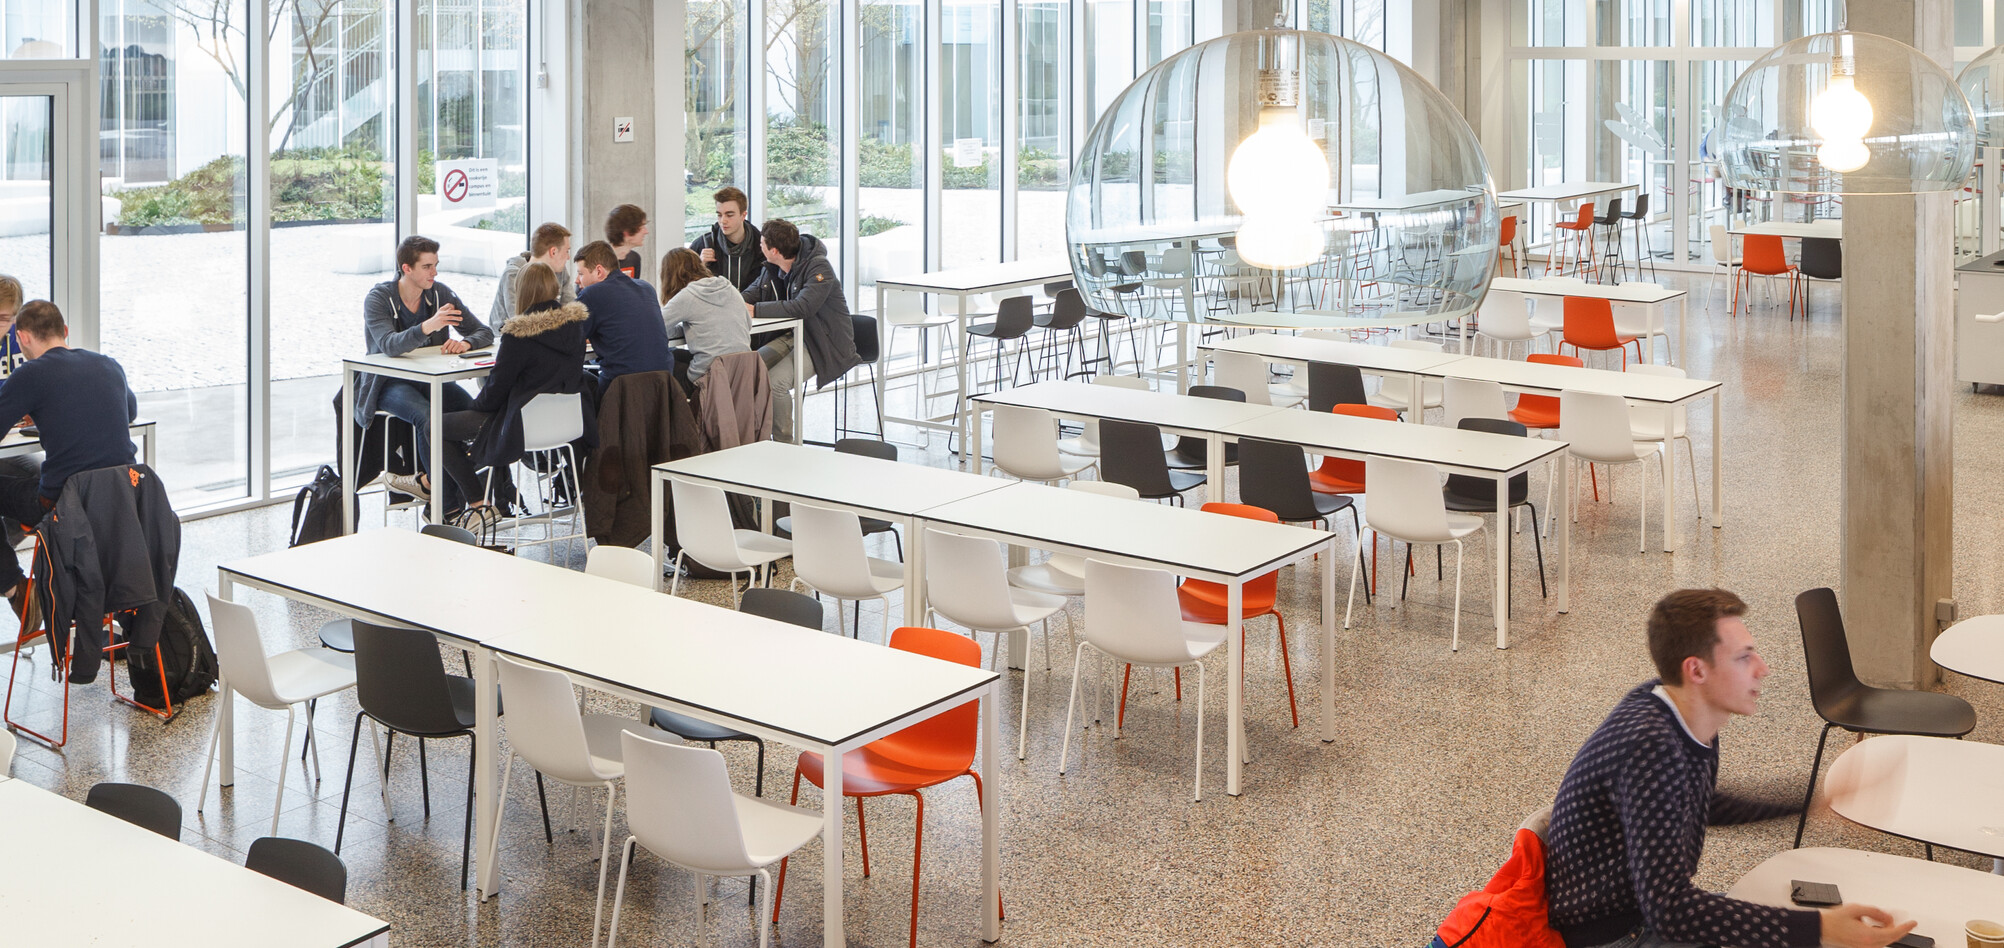 Royal Ahrend education project Artesis Plantijn University College Antwerp in Antwerpen 16